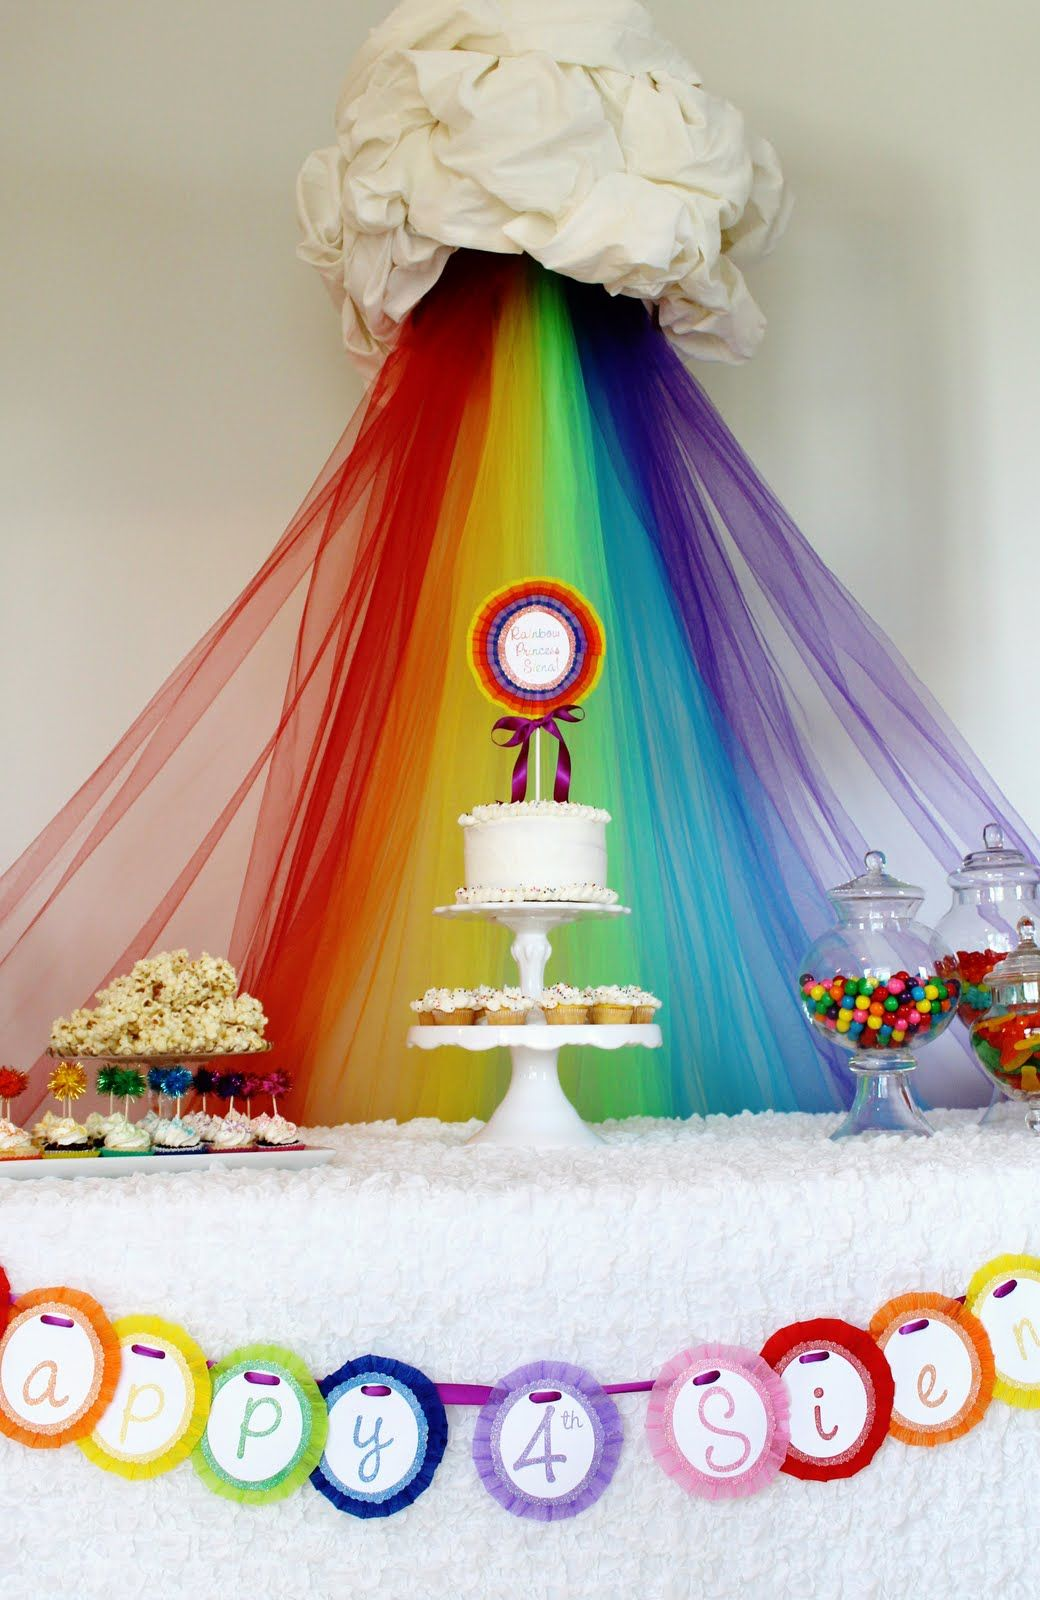 Tulle Canopy Diy Rainbow Canopy Tulle Old Lampshade With Bustled Cotton Sheet